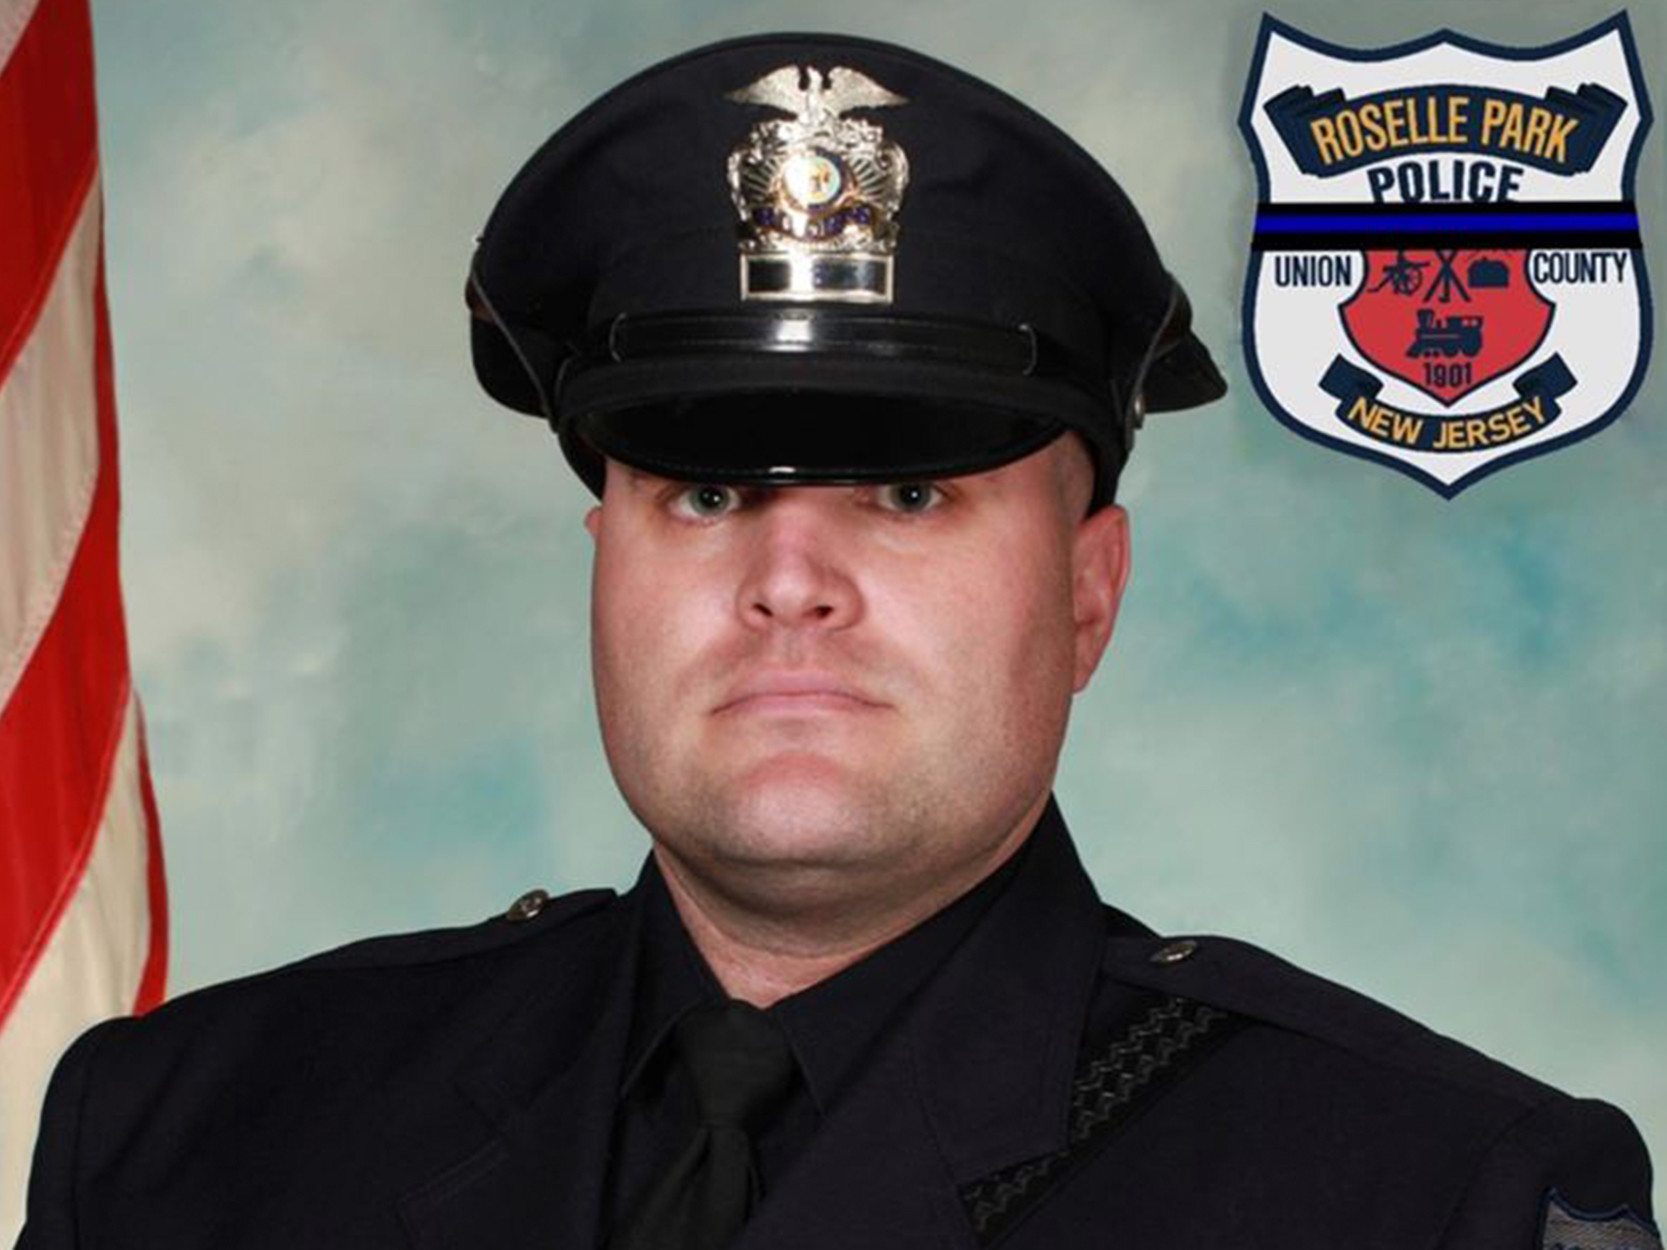 New Jersey cop who shot self after car crash was 13-year veteran of Roselle Park police department